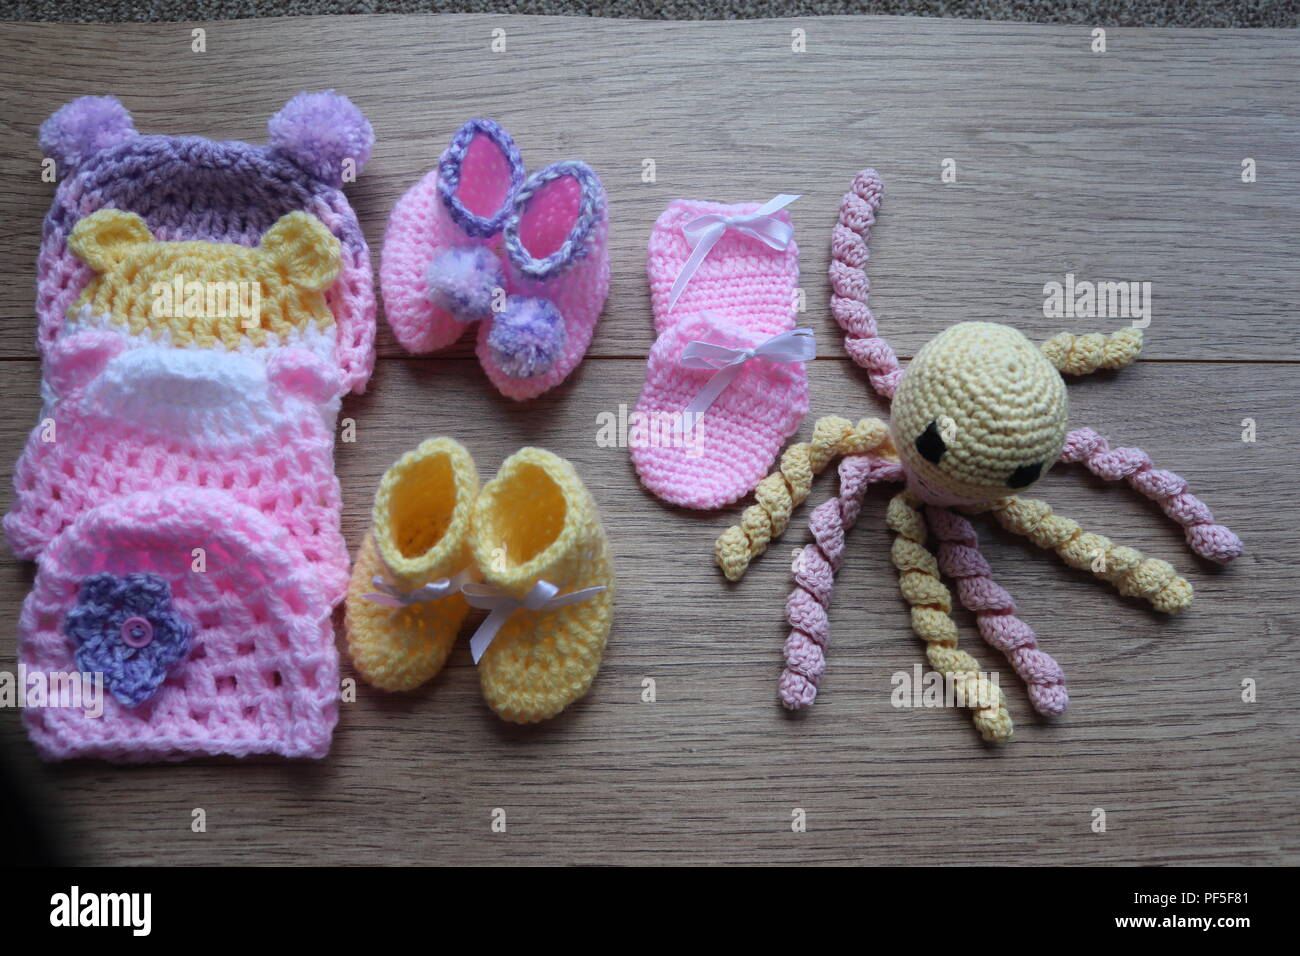 Premature baby items for comfort and warmth,octopus with feel of unbiblical cord,hat booties and mittens - Stock Image